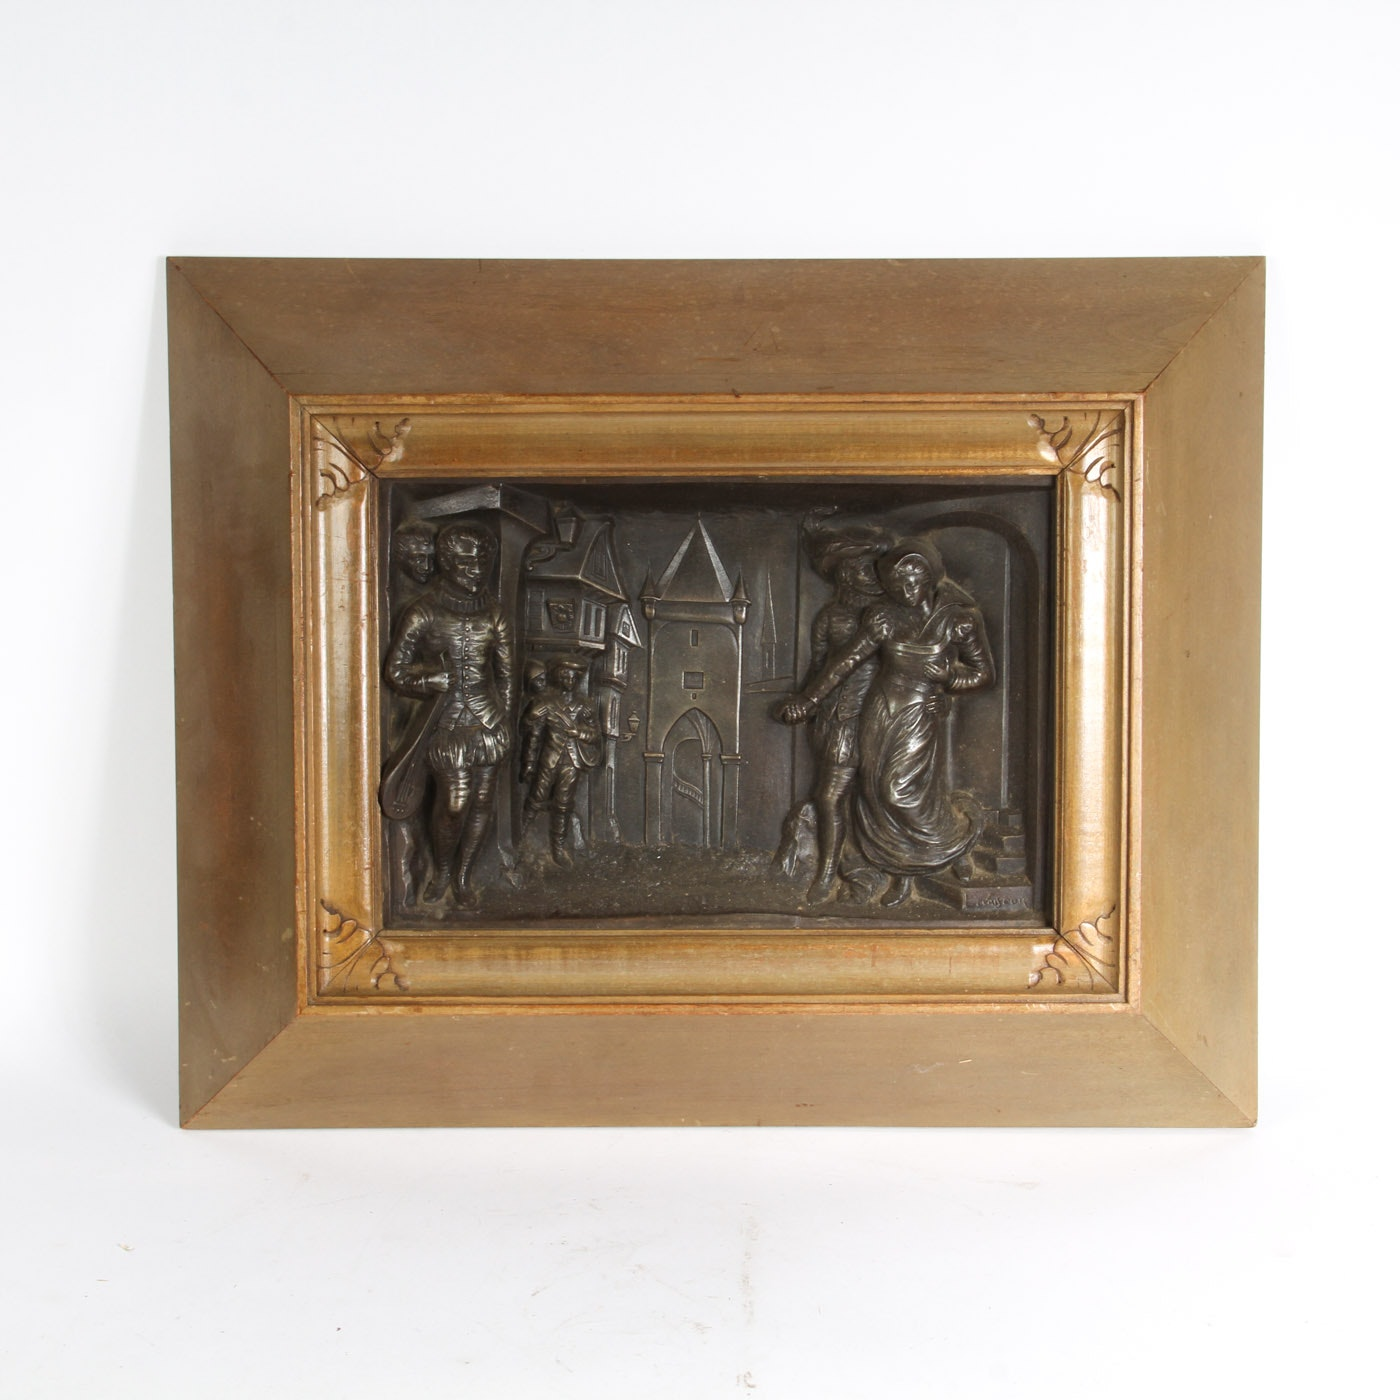 Henri L. Levasseur Metal Relief Plaque